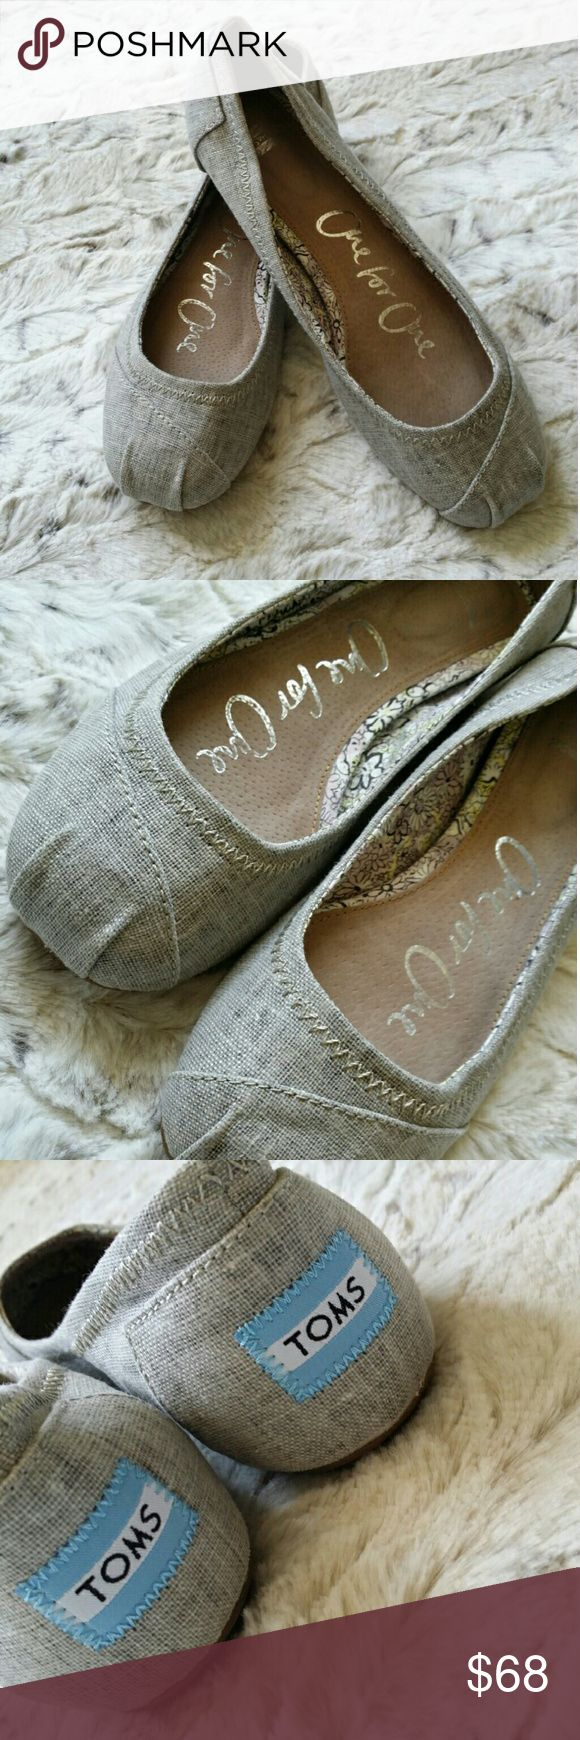 Toms Ballet Natalia Gray/Grey Linen Flats EUC Only worn inside. Great to wear any day of the week for work or play! Perfect neutral color to go with your basic skirts or Lularoe prints! Beautiful addition to any fashionistas closet!  Note : Very slight wear visible on bottom of shoes as shown in photo. Also, some fading of size (w5) inside shoes-can provide photo if interested.  Smoke/Pet Free Home  No Trades TOMS Shoes Flats & Loafers